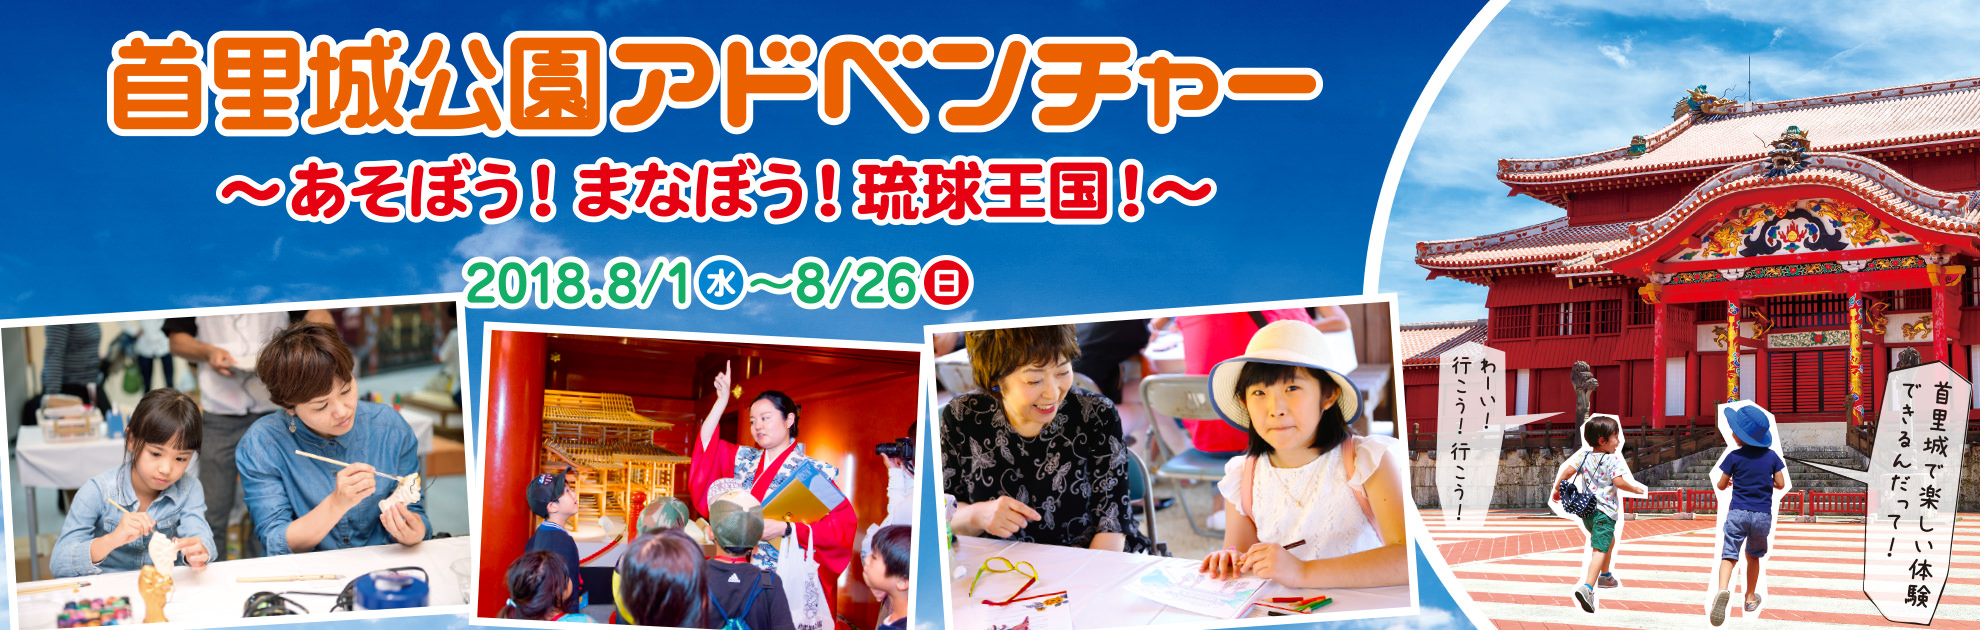 "Shurijo Castle Park plan exhibition ""storage of picnic - portable tableware, nest of boxes, hot water ~ of Ryukyuan"""